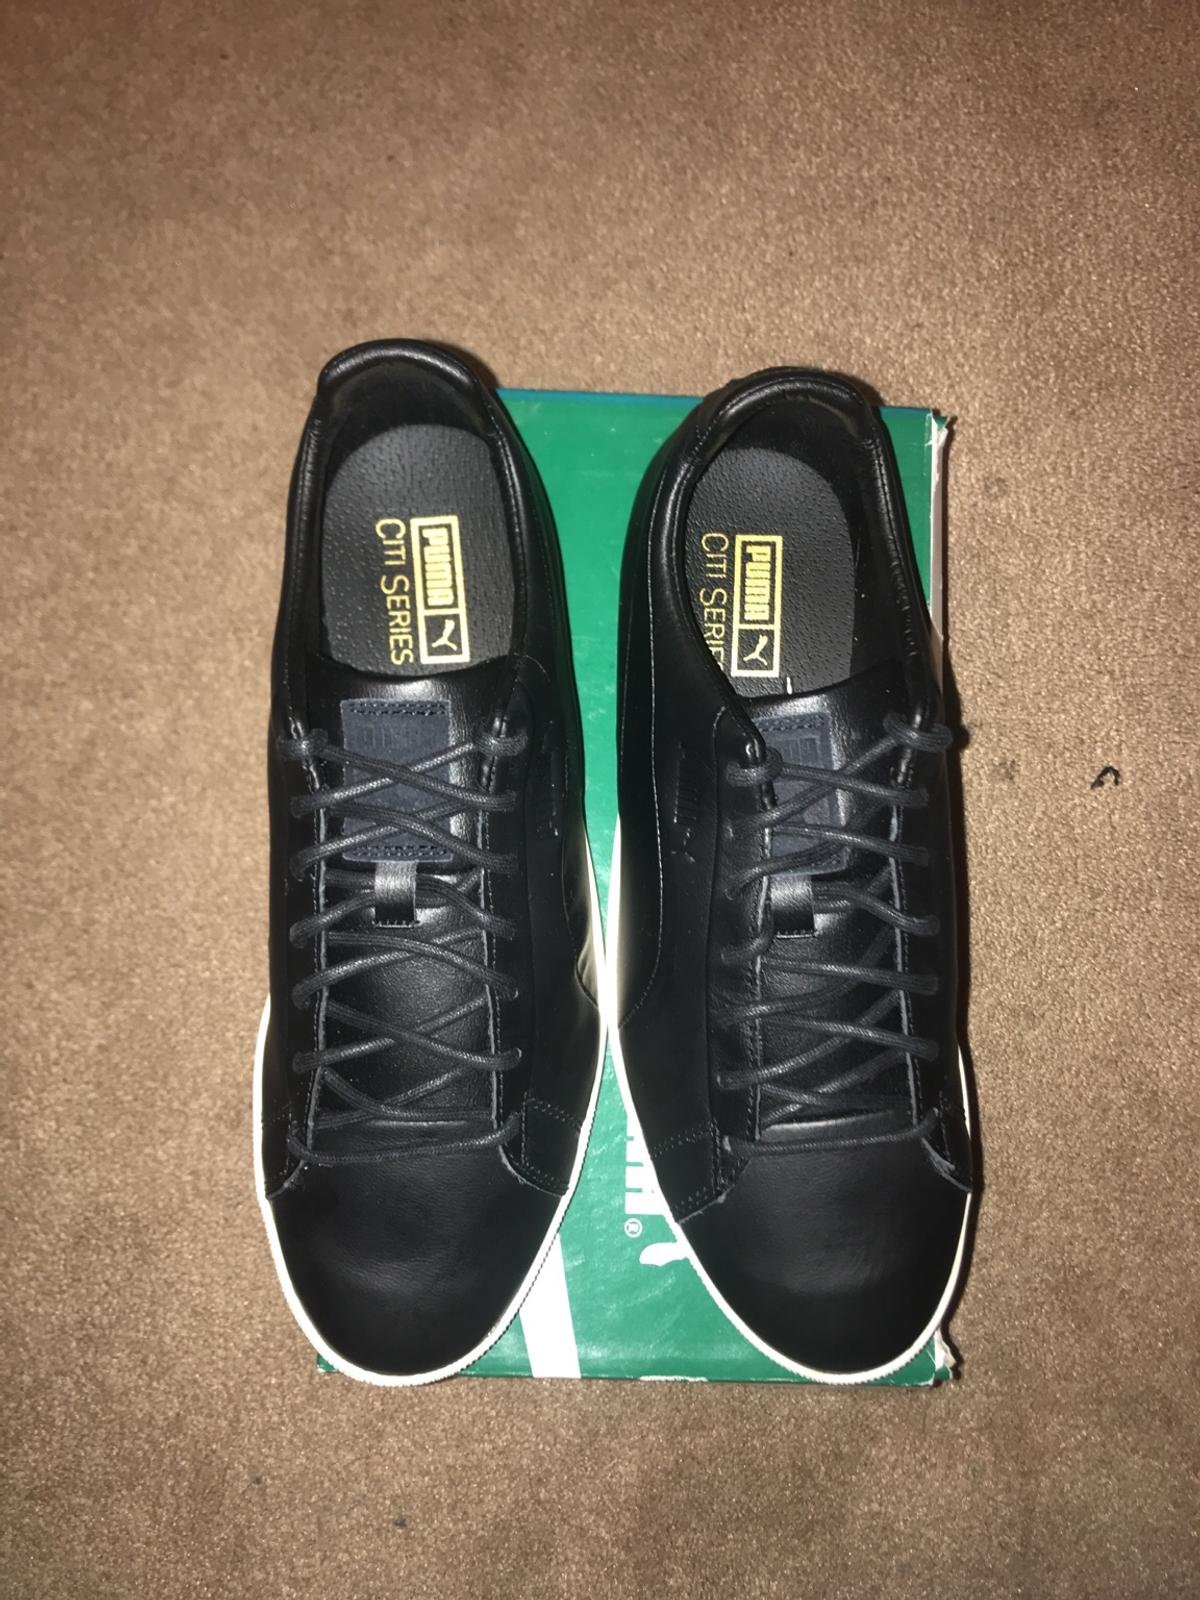 a2d99a80545 Puma shoes (Citi series in B12 Birmingham for £25.00 for sale - Shpock